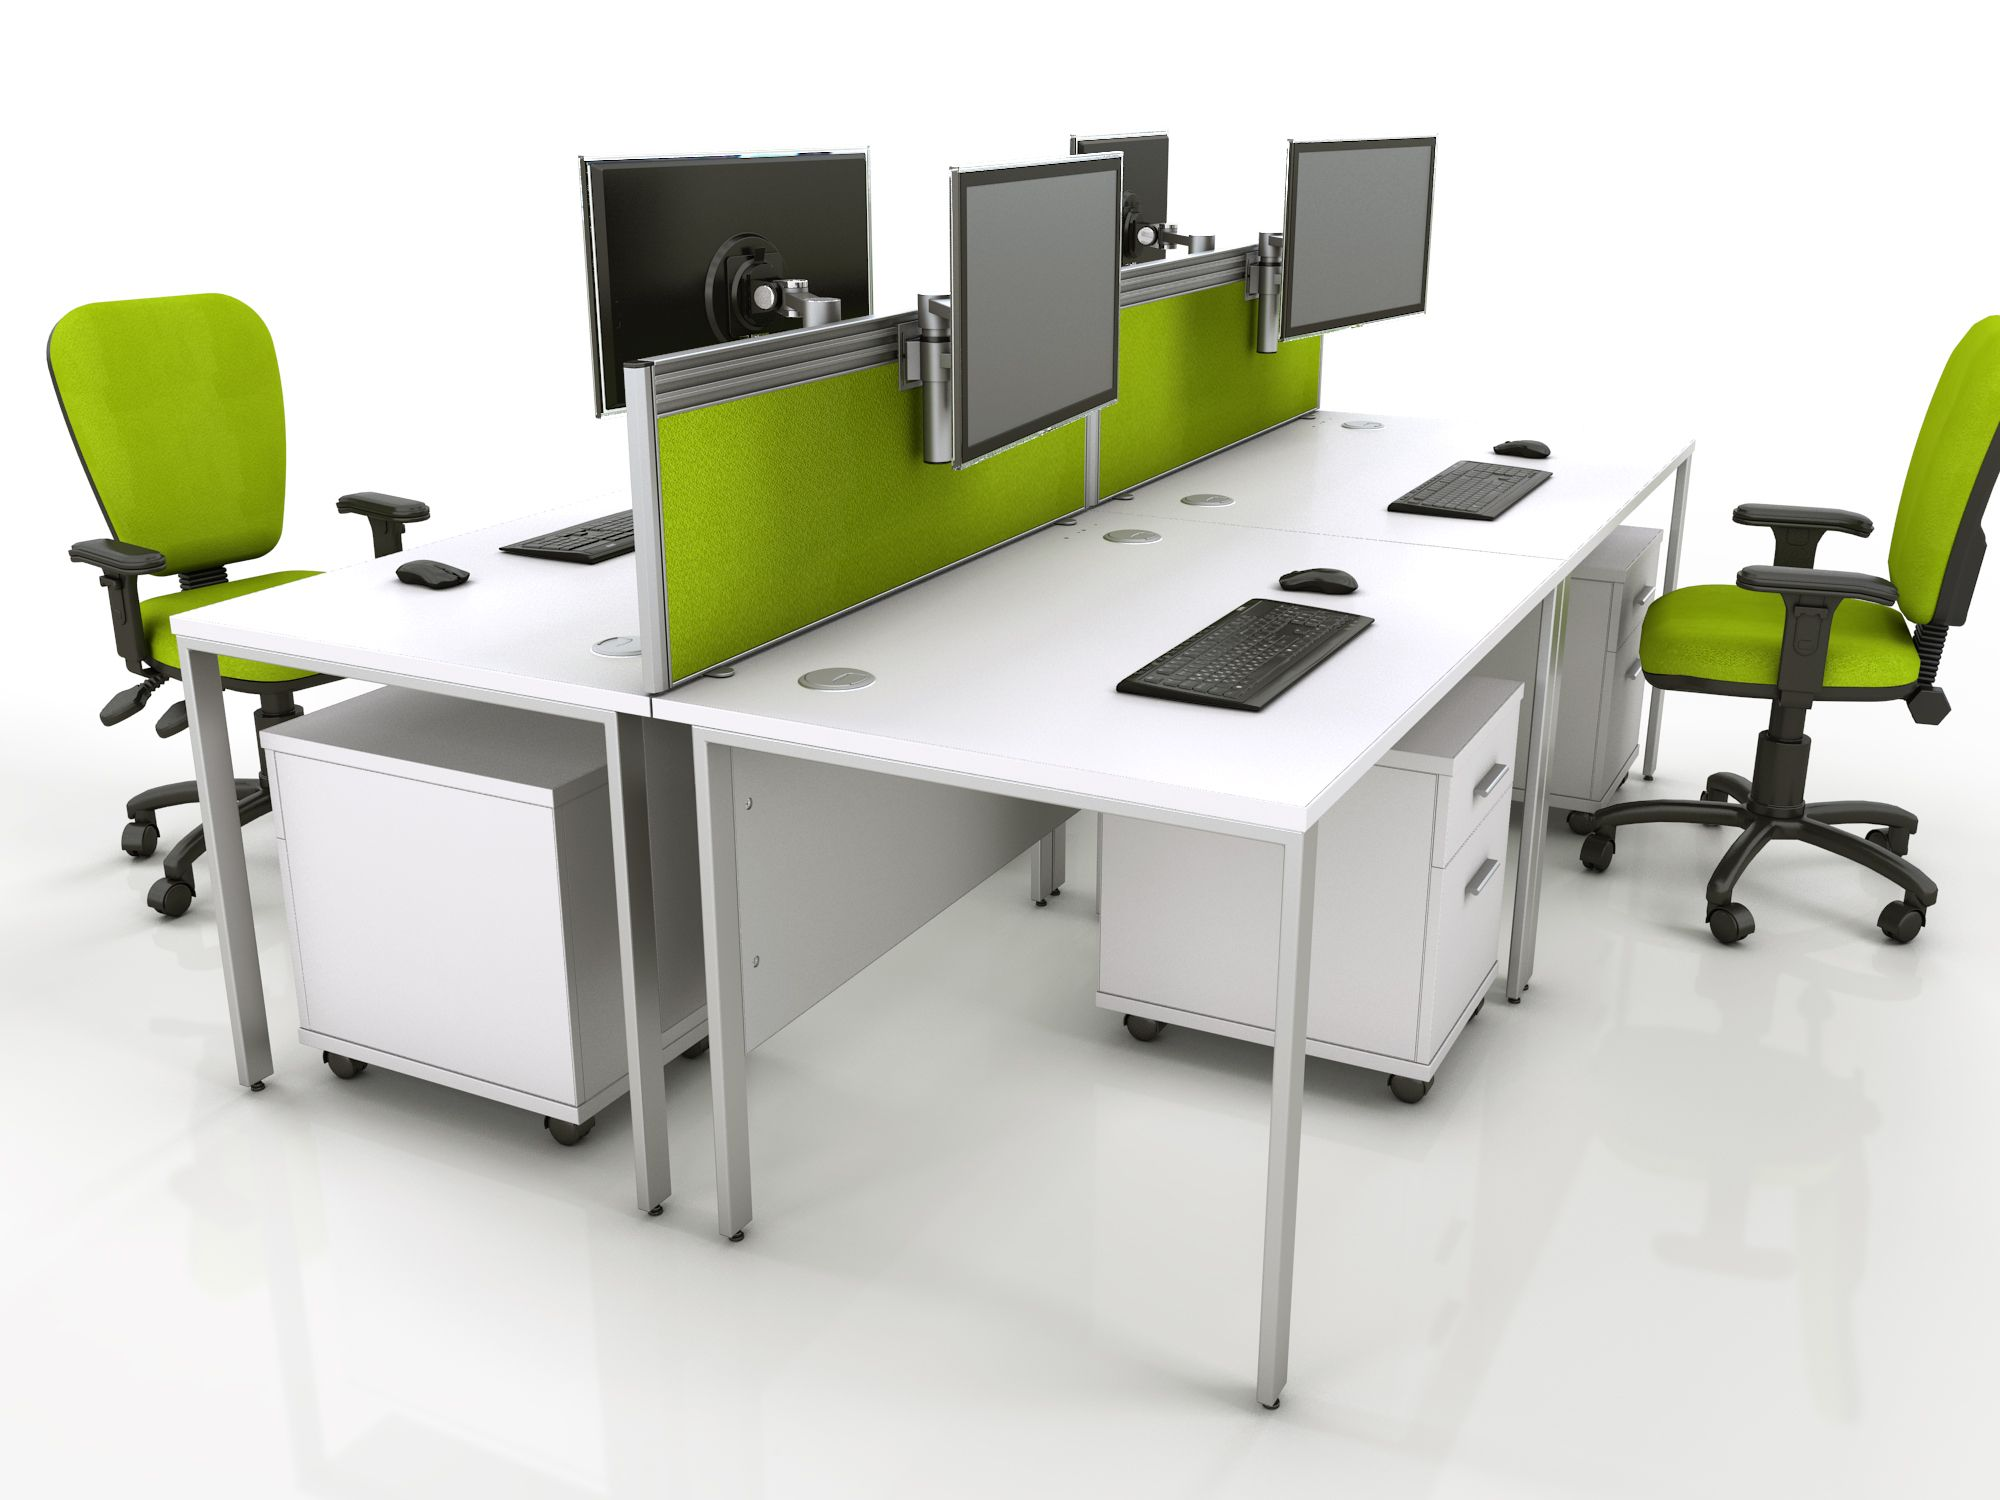 x white bench desk with cable access ports from the uku0027s leading discount office furniture supplier desks storage e